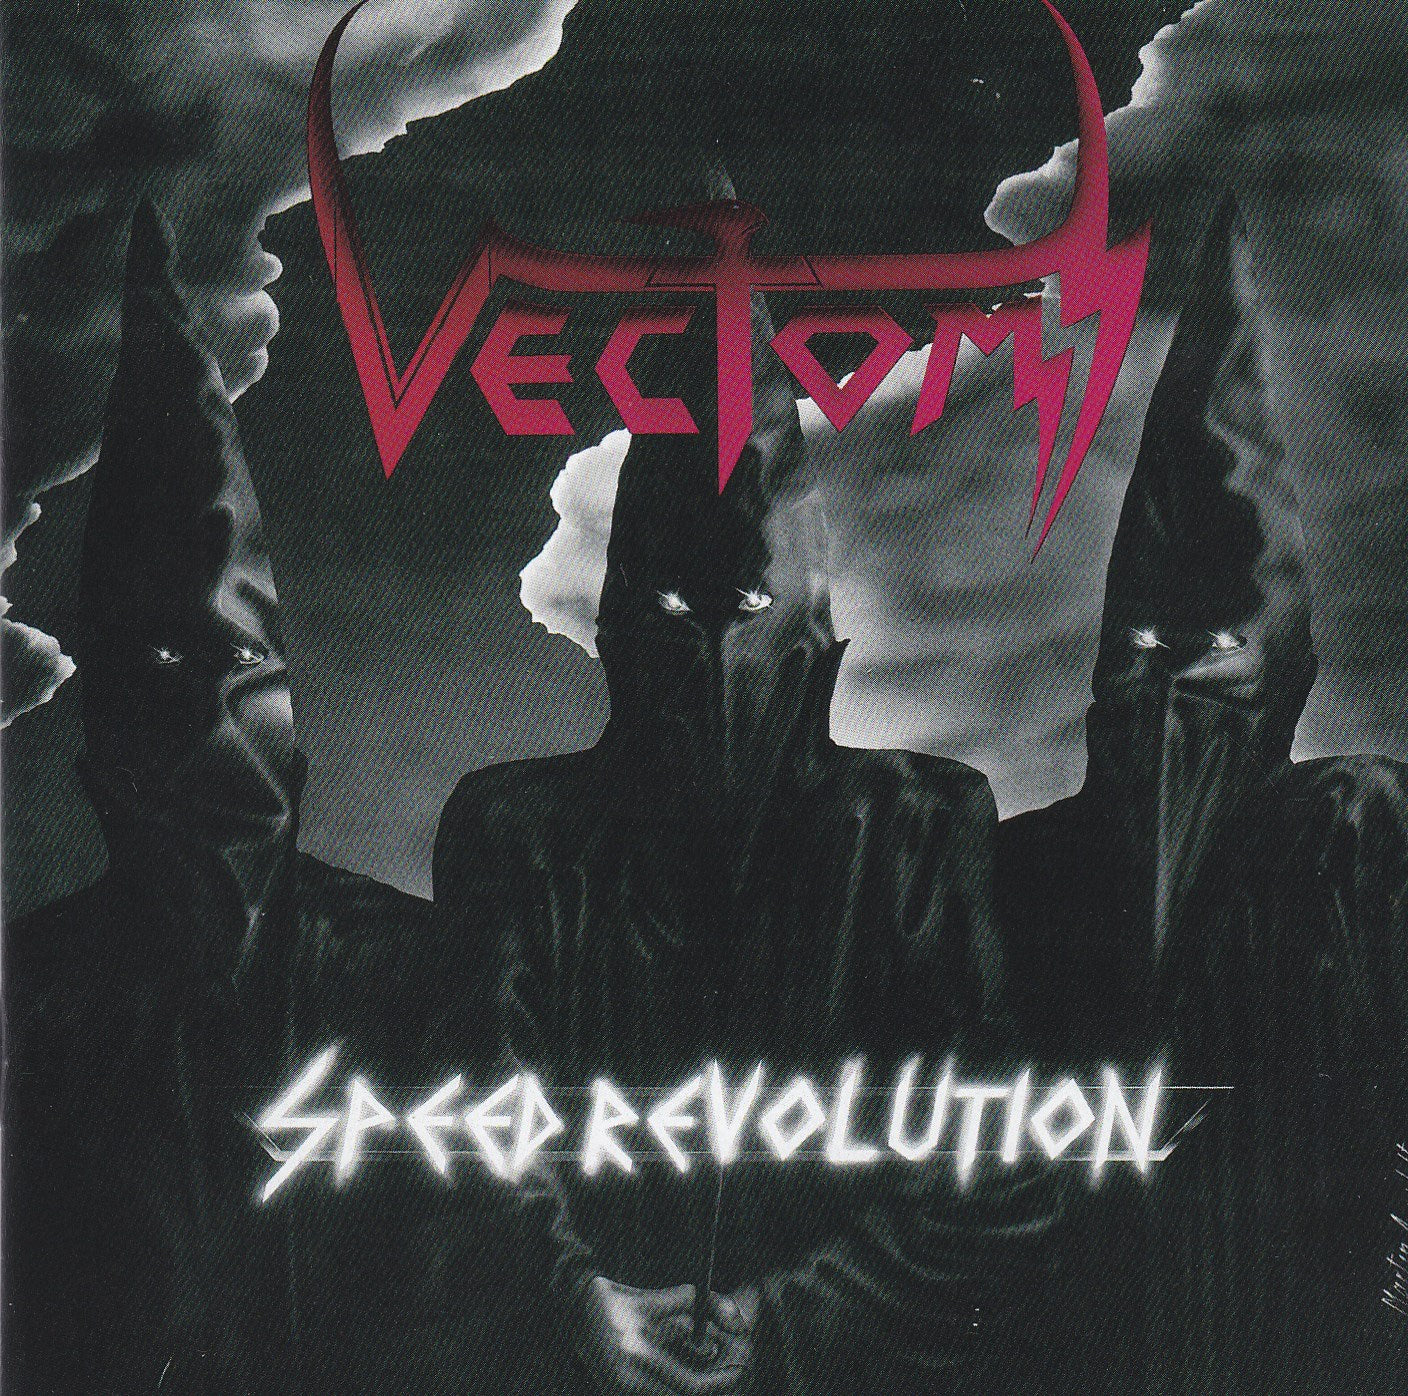 VECTOM - SPEED REVOLUTION / RULES OF MYSTERY (*NEW-CD, 2011, Battle Cry Records) Import Rare 80's Thrash / Speed Metal Reissue